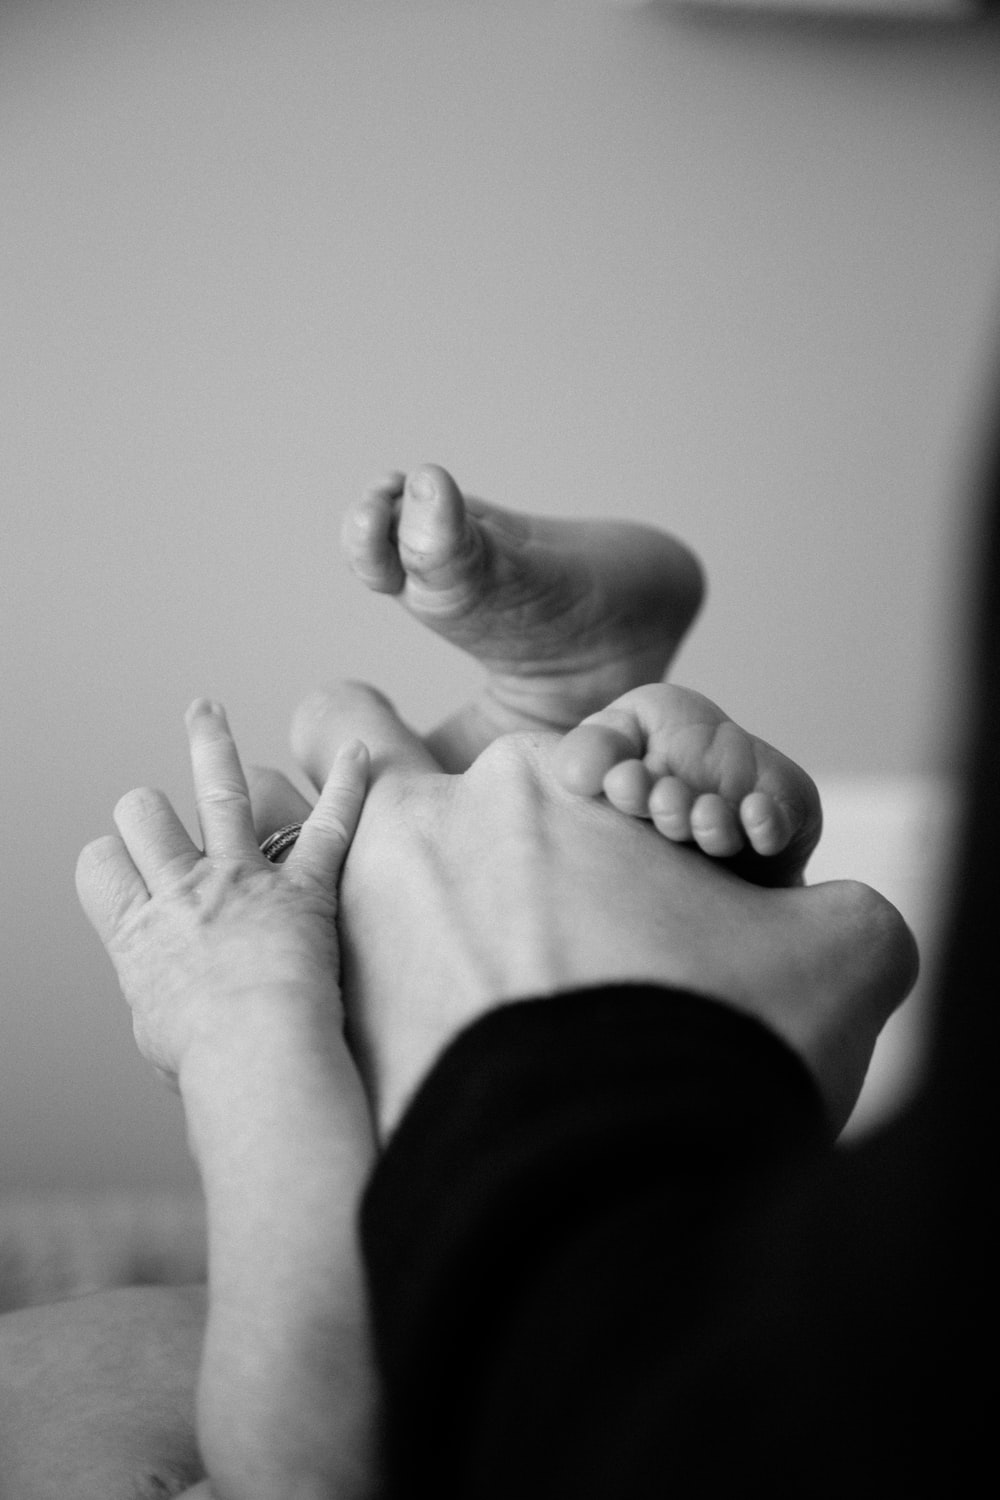 person holding baby